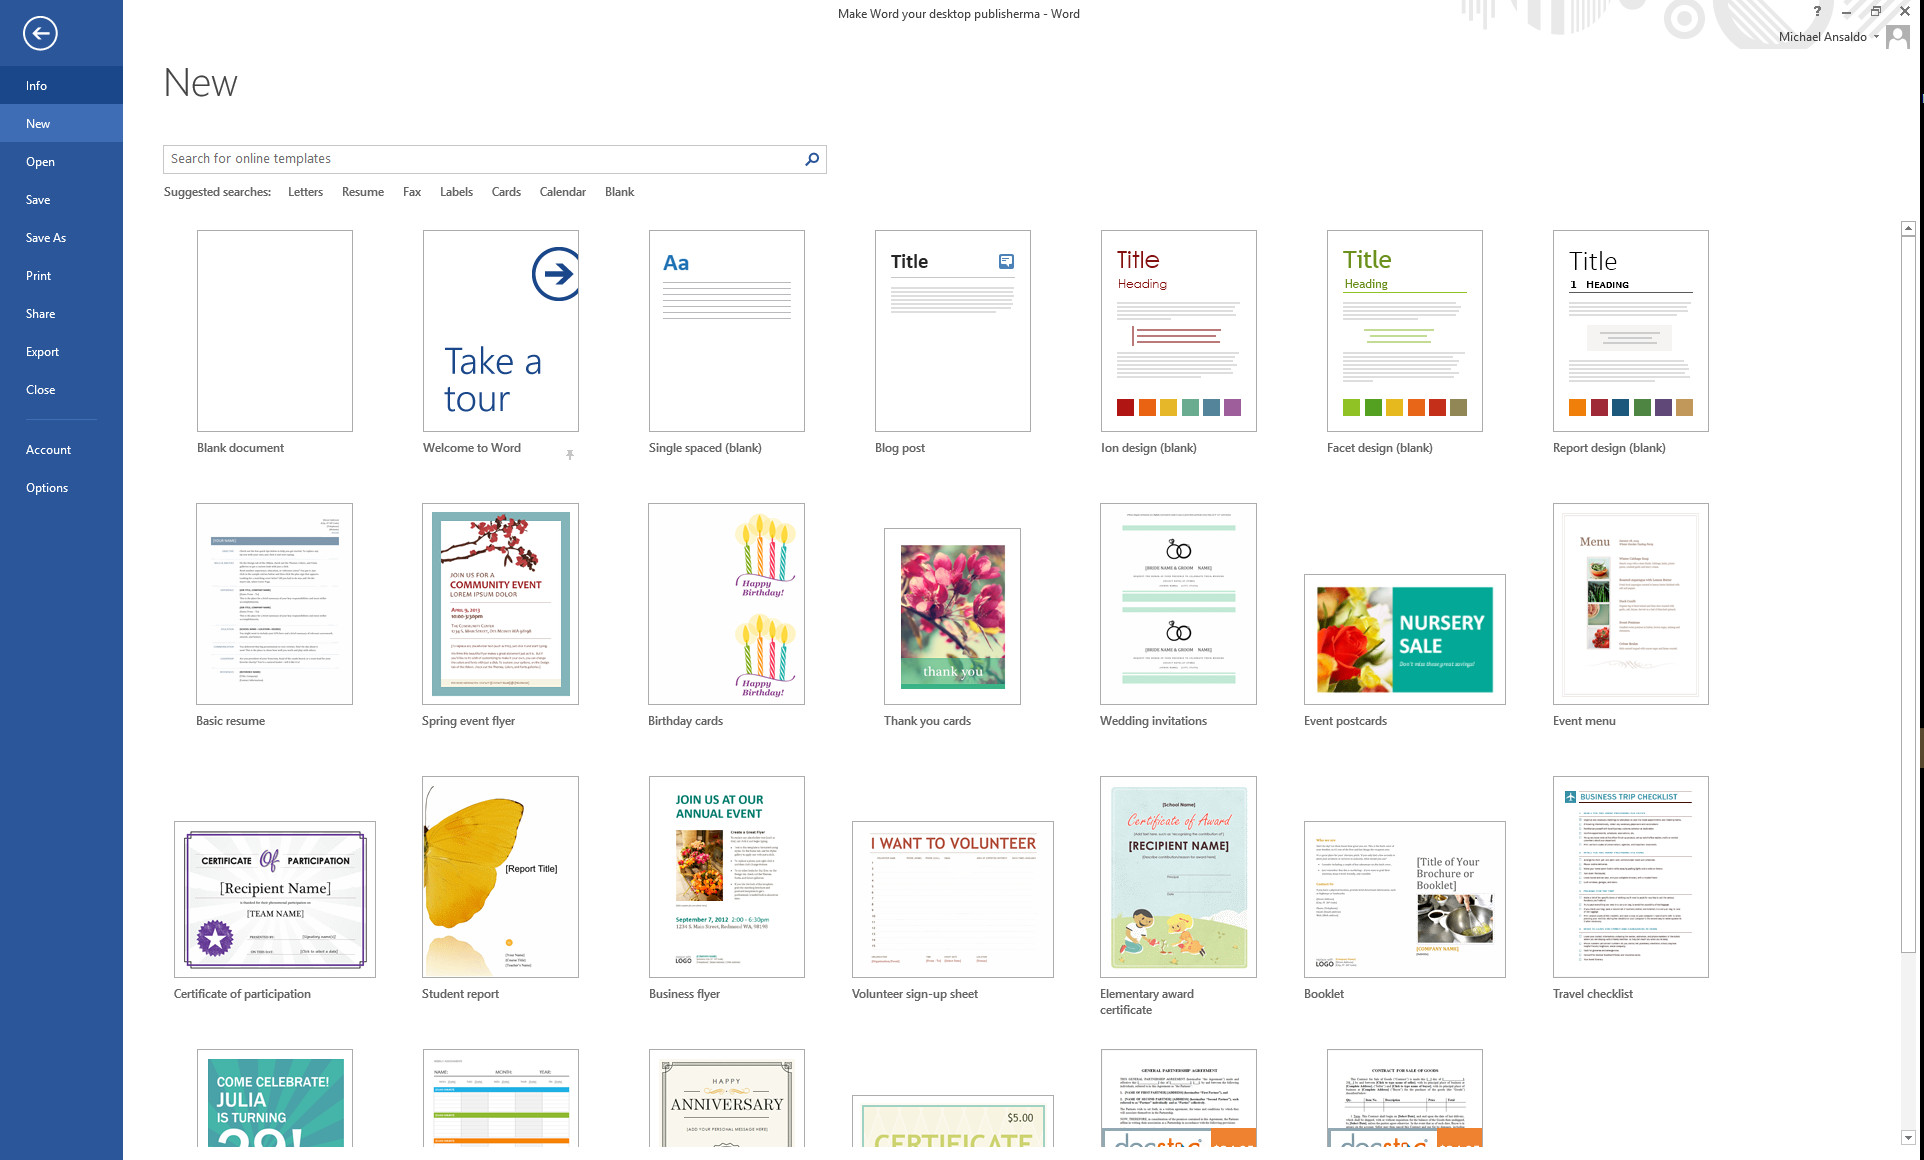 Microsoft Word Design Templates Word's Secret Design Sizzle Learn the Built In tools for